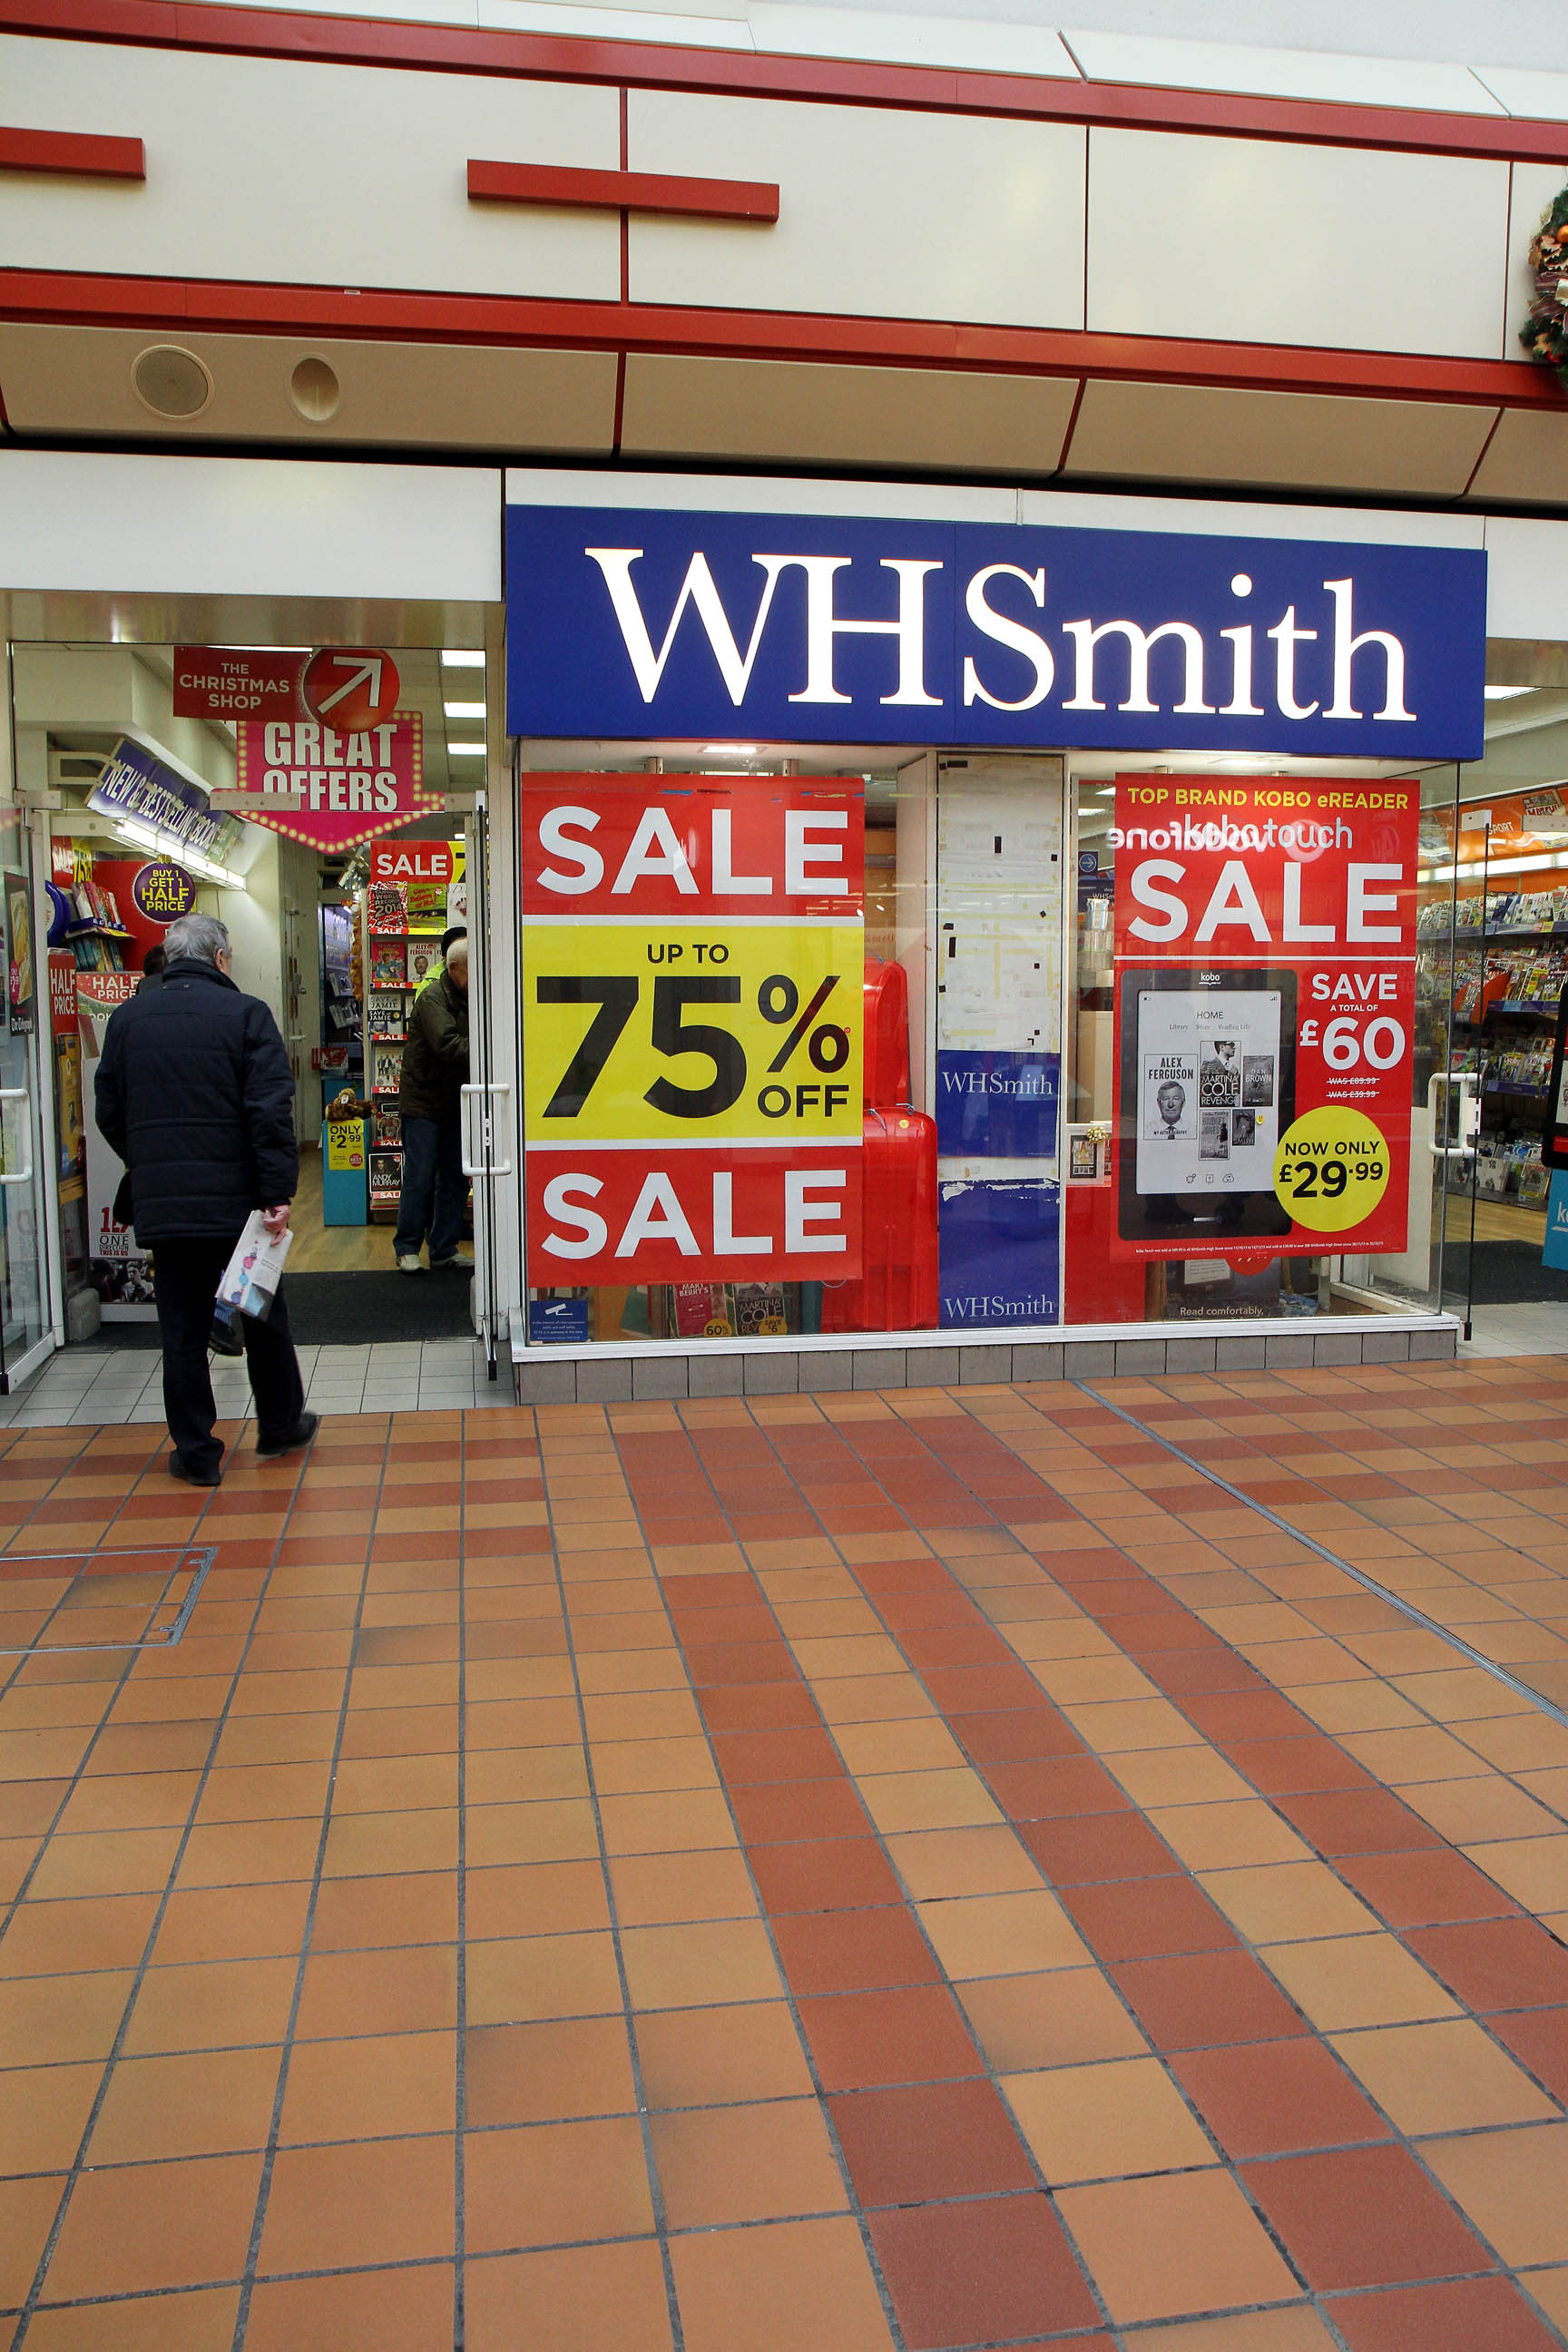 WH Smith in Keighley's Airedale Shopping Centre, which could become the new home for the town's main Post Office branch